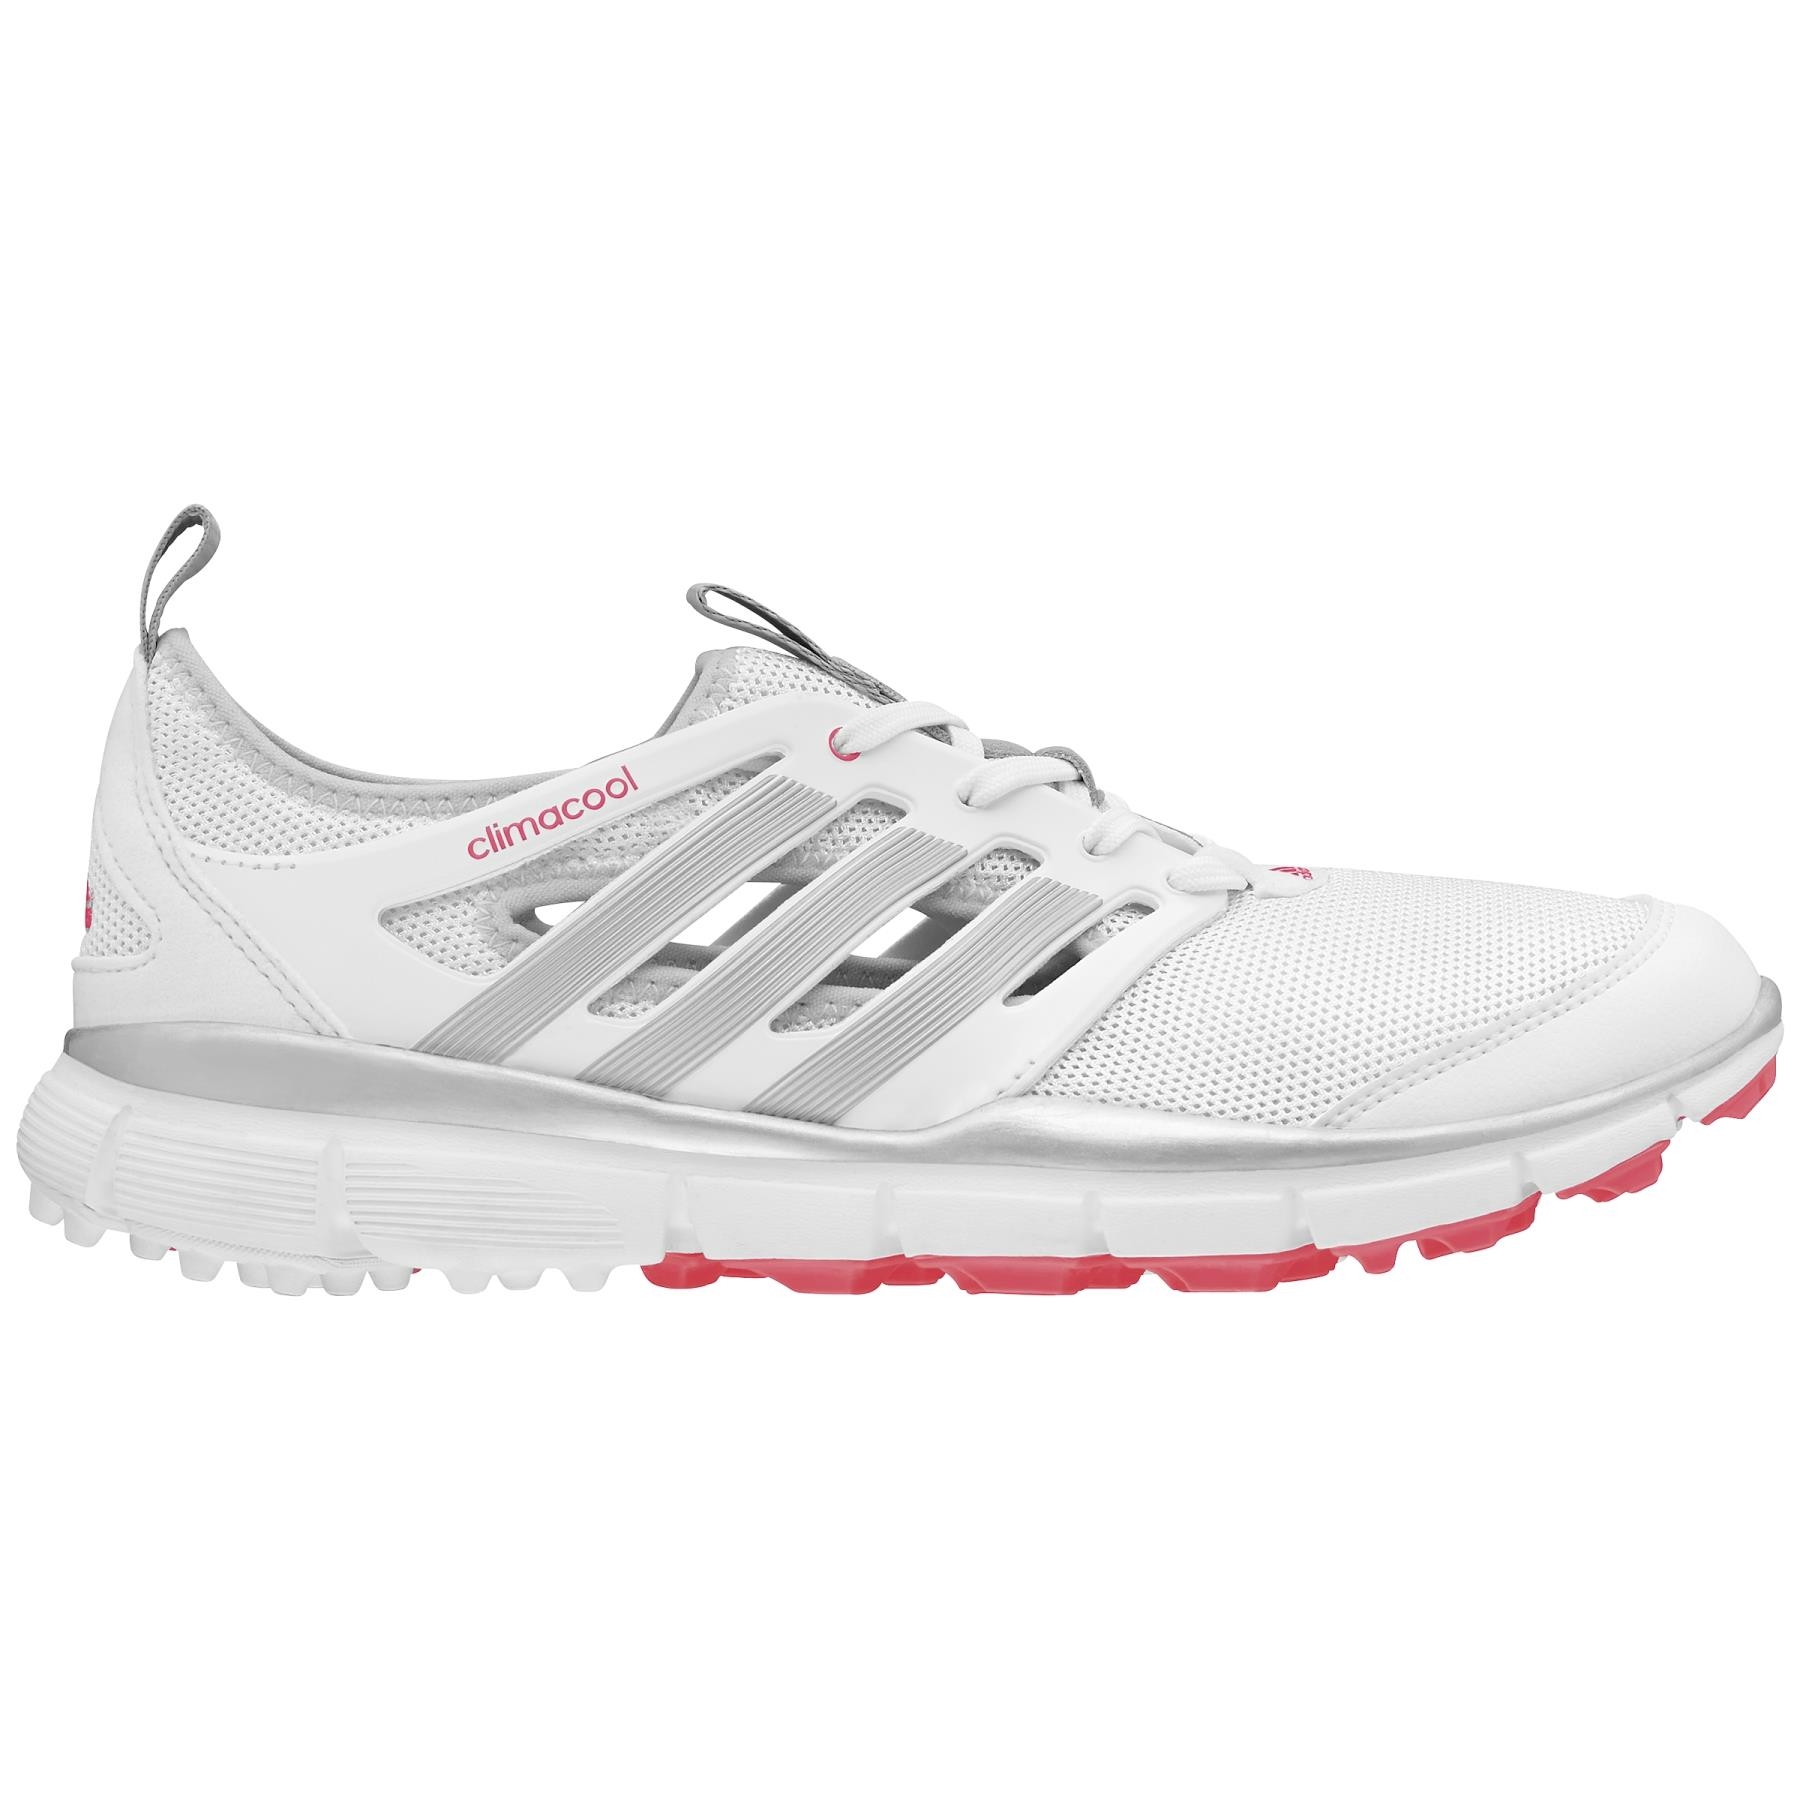 adidas Women's Climacool II White/Silver Golf Shoe